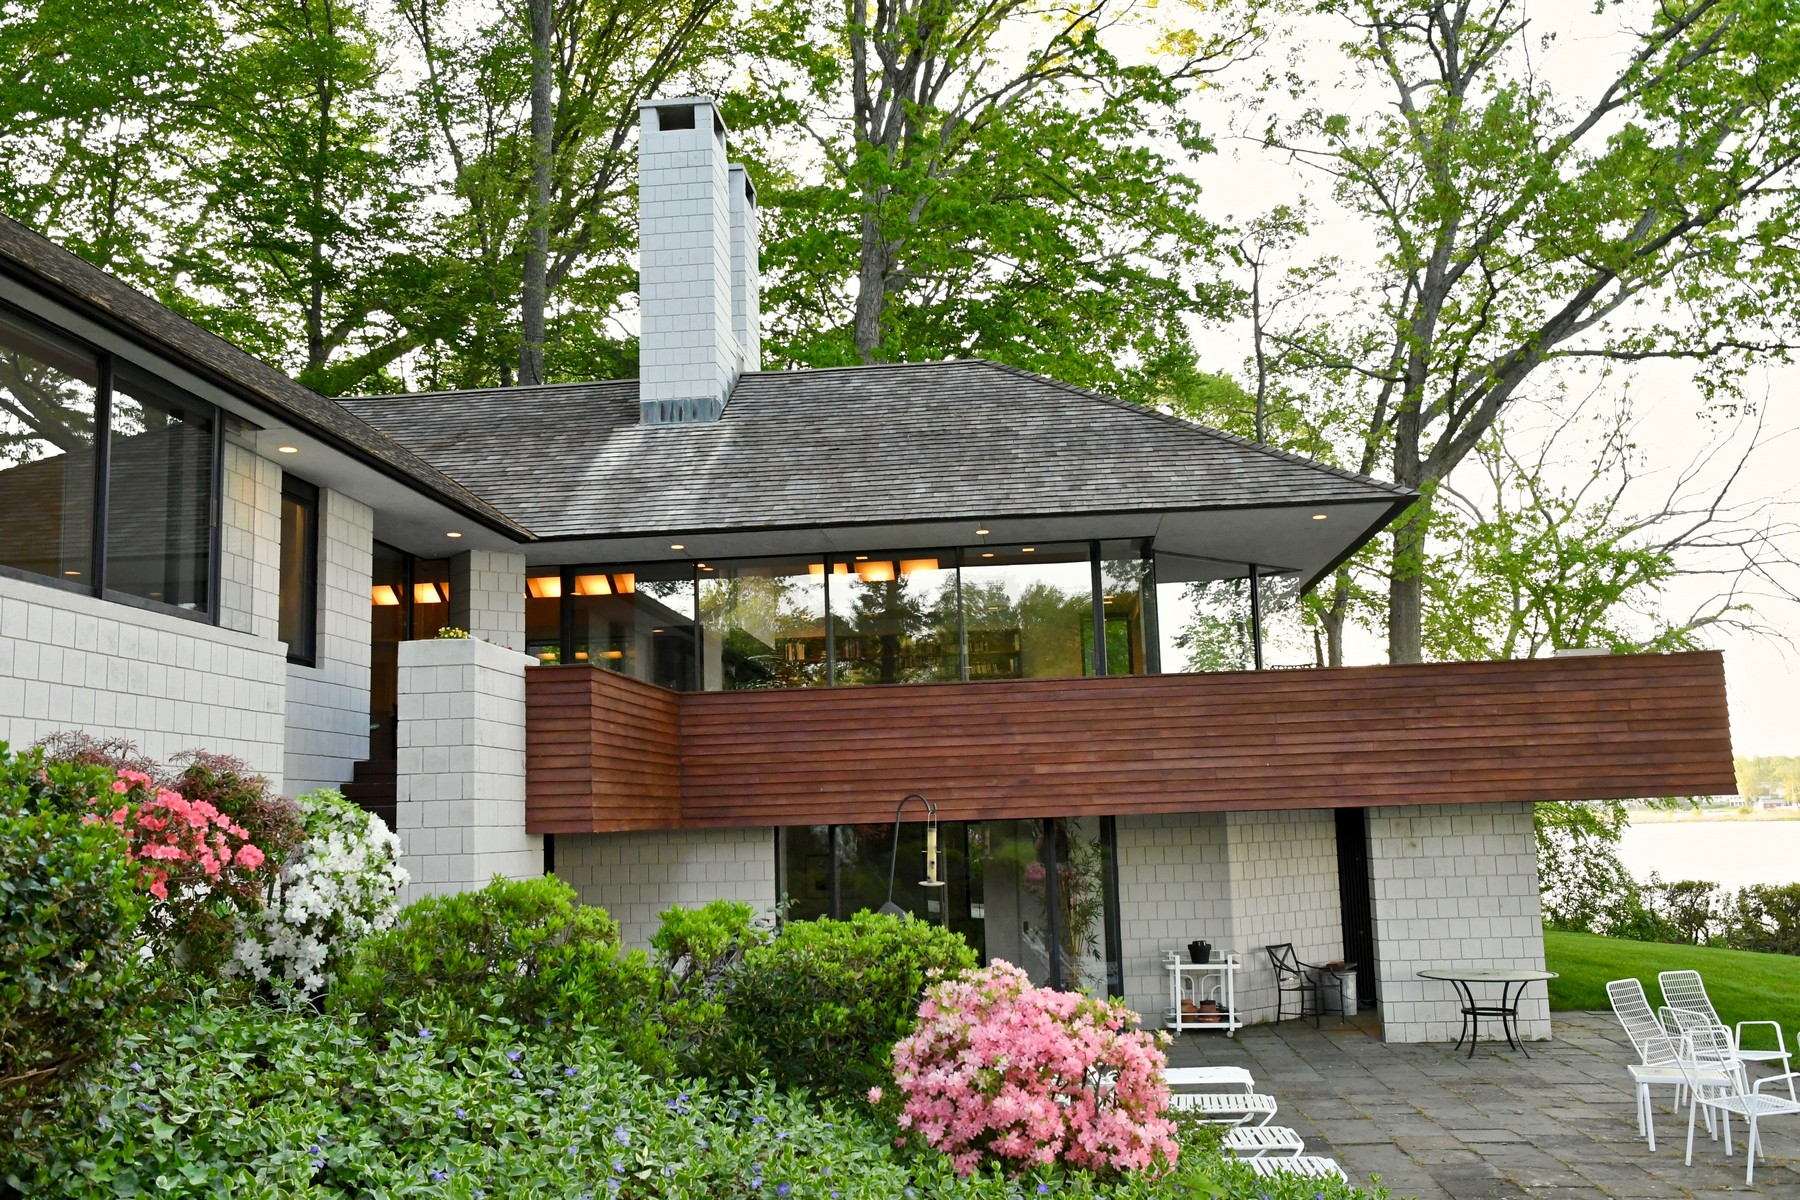 Single Family Homes for Sale at Direct Waterfront Mid Century Modern Masterpiece 42 Crosstrees Hill Road Essex, Connecticut 06426 United States